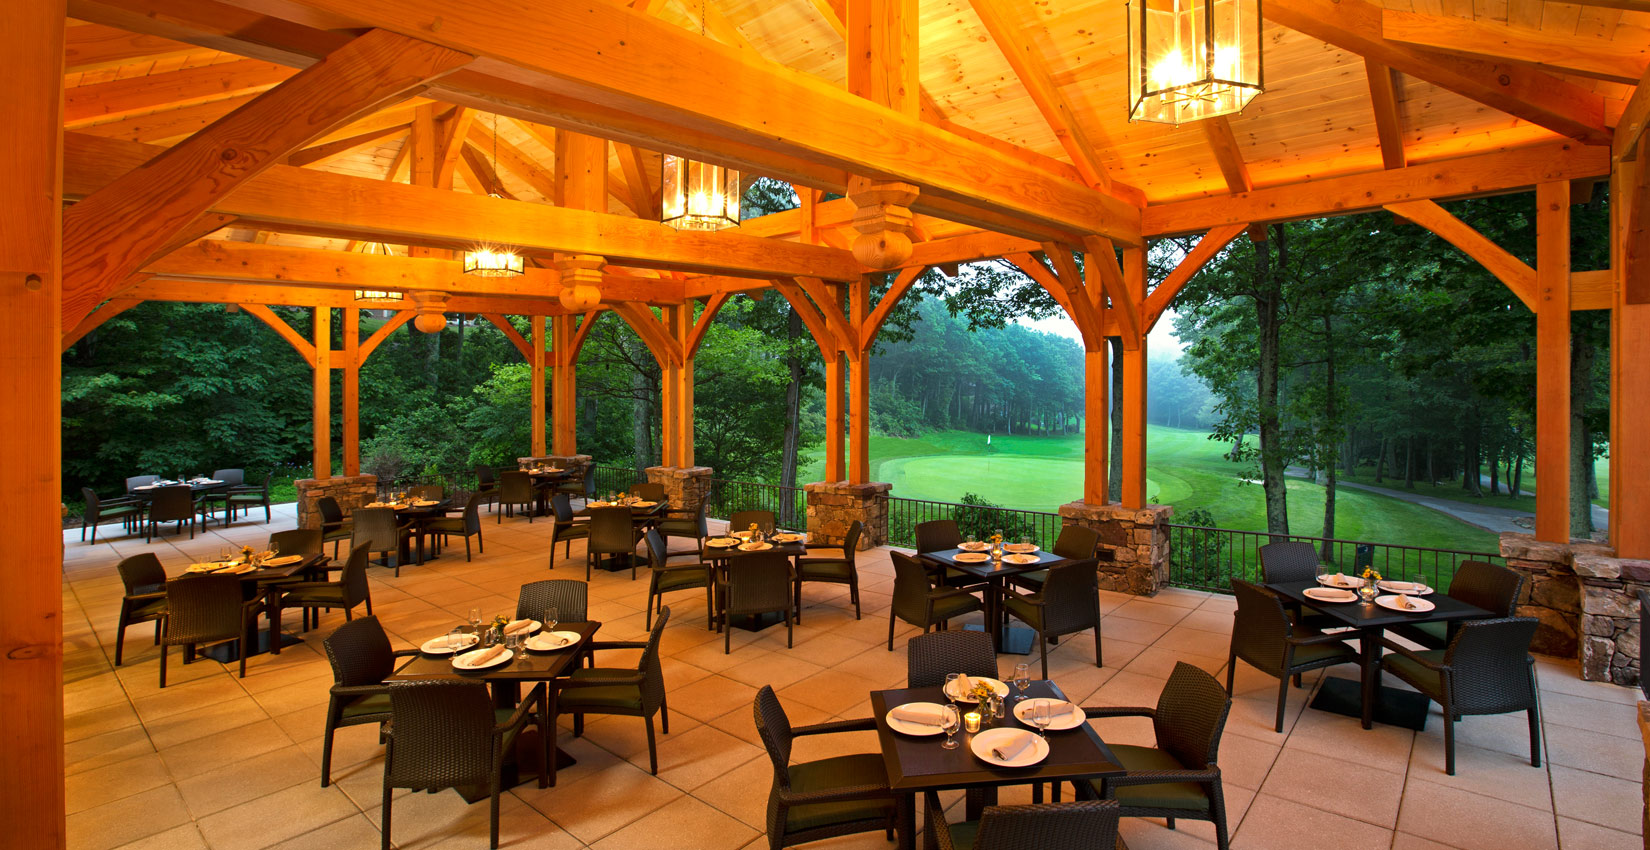 Summer Outdoor Dining on that Patio at Devils Grill at Wintergreen Resort